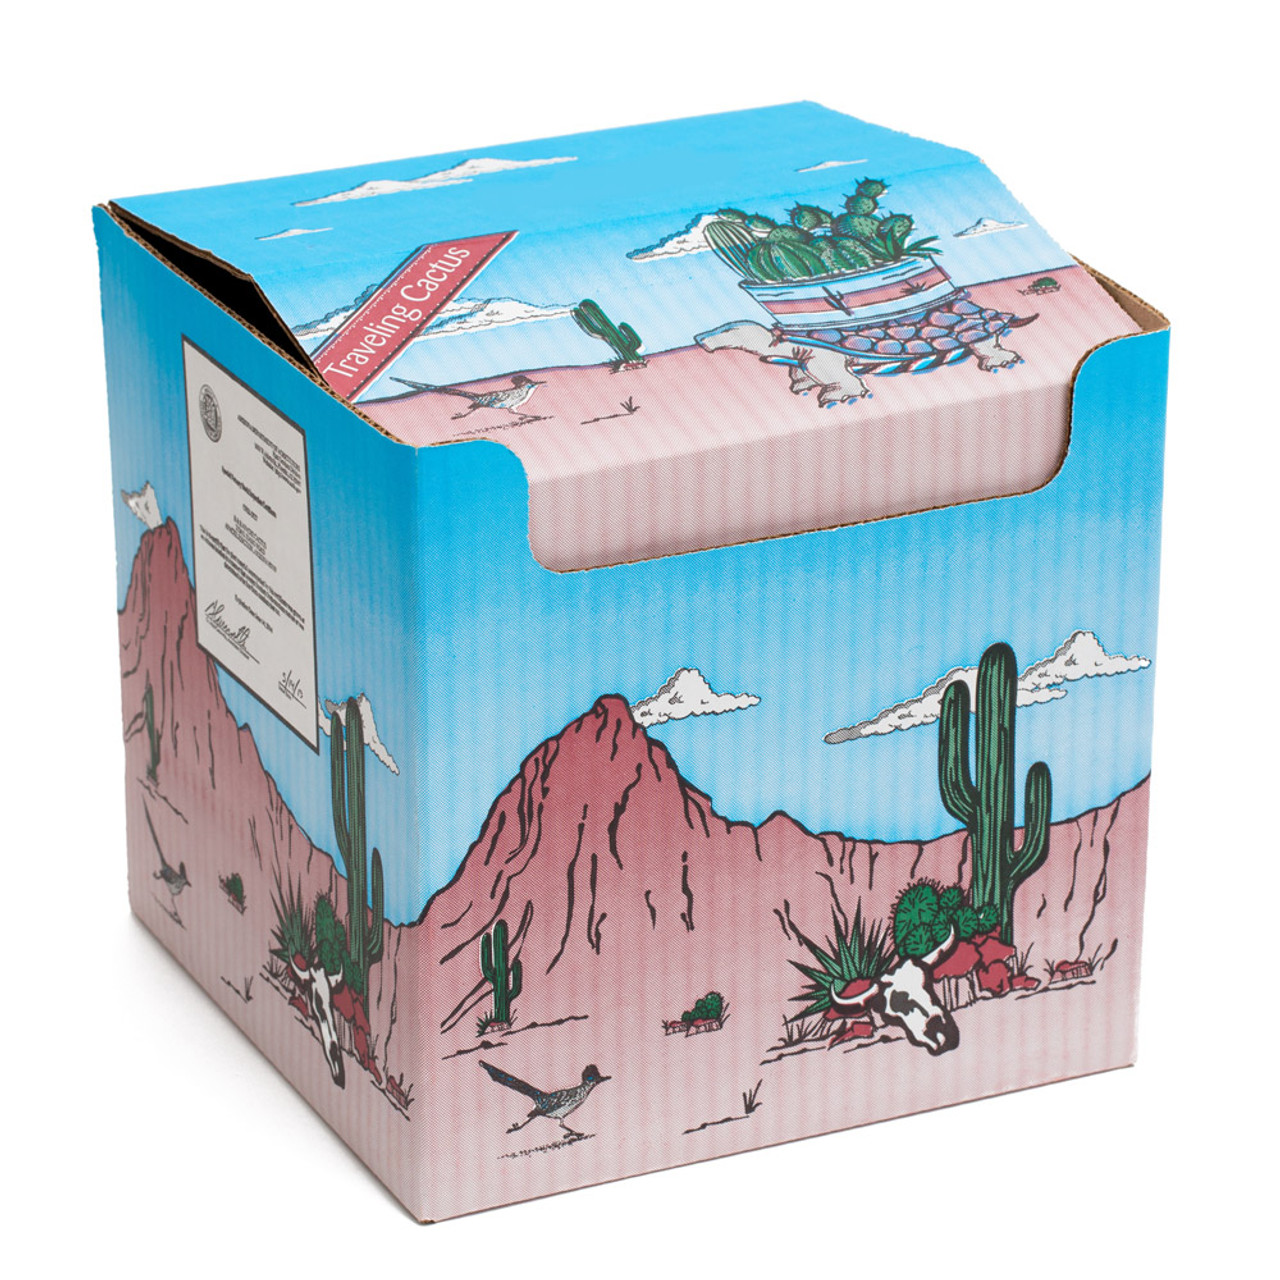 Cactus Travel Kit - 6 inch